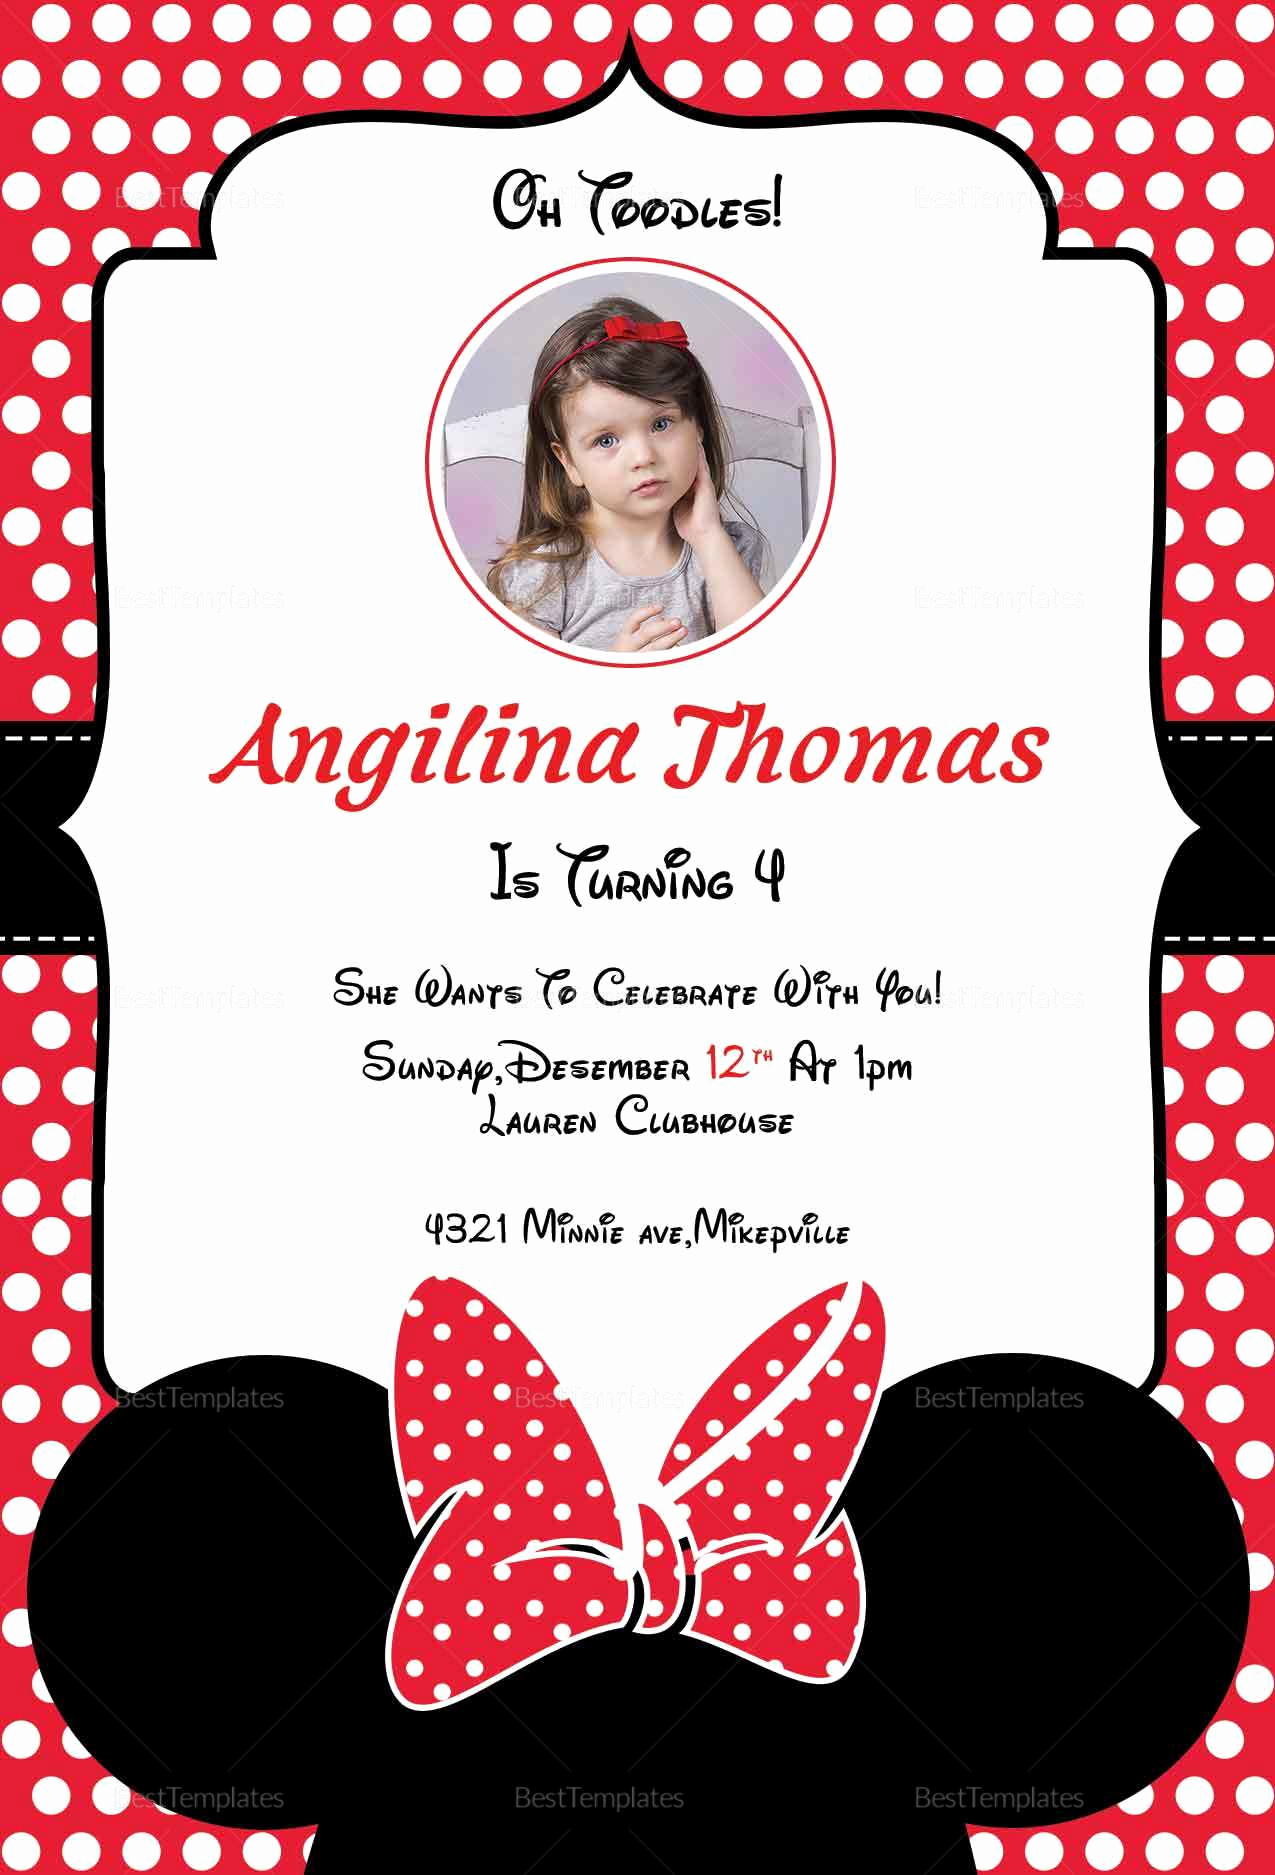 Minnie Mouse Invitation Card Awesome Birthday Minnie Mouse Invitation Card Design Template In